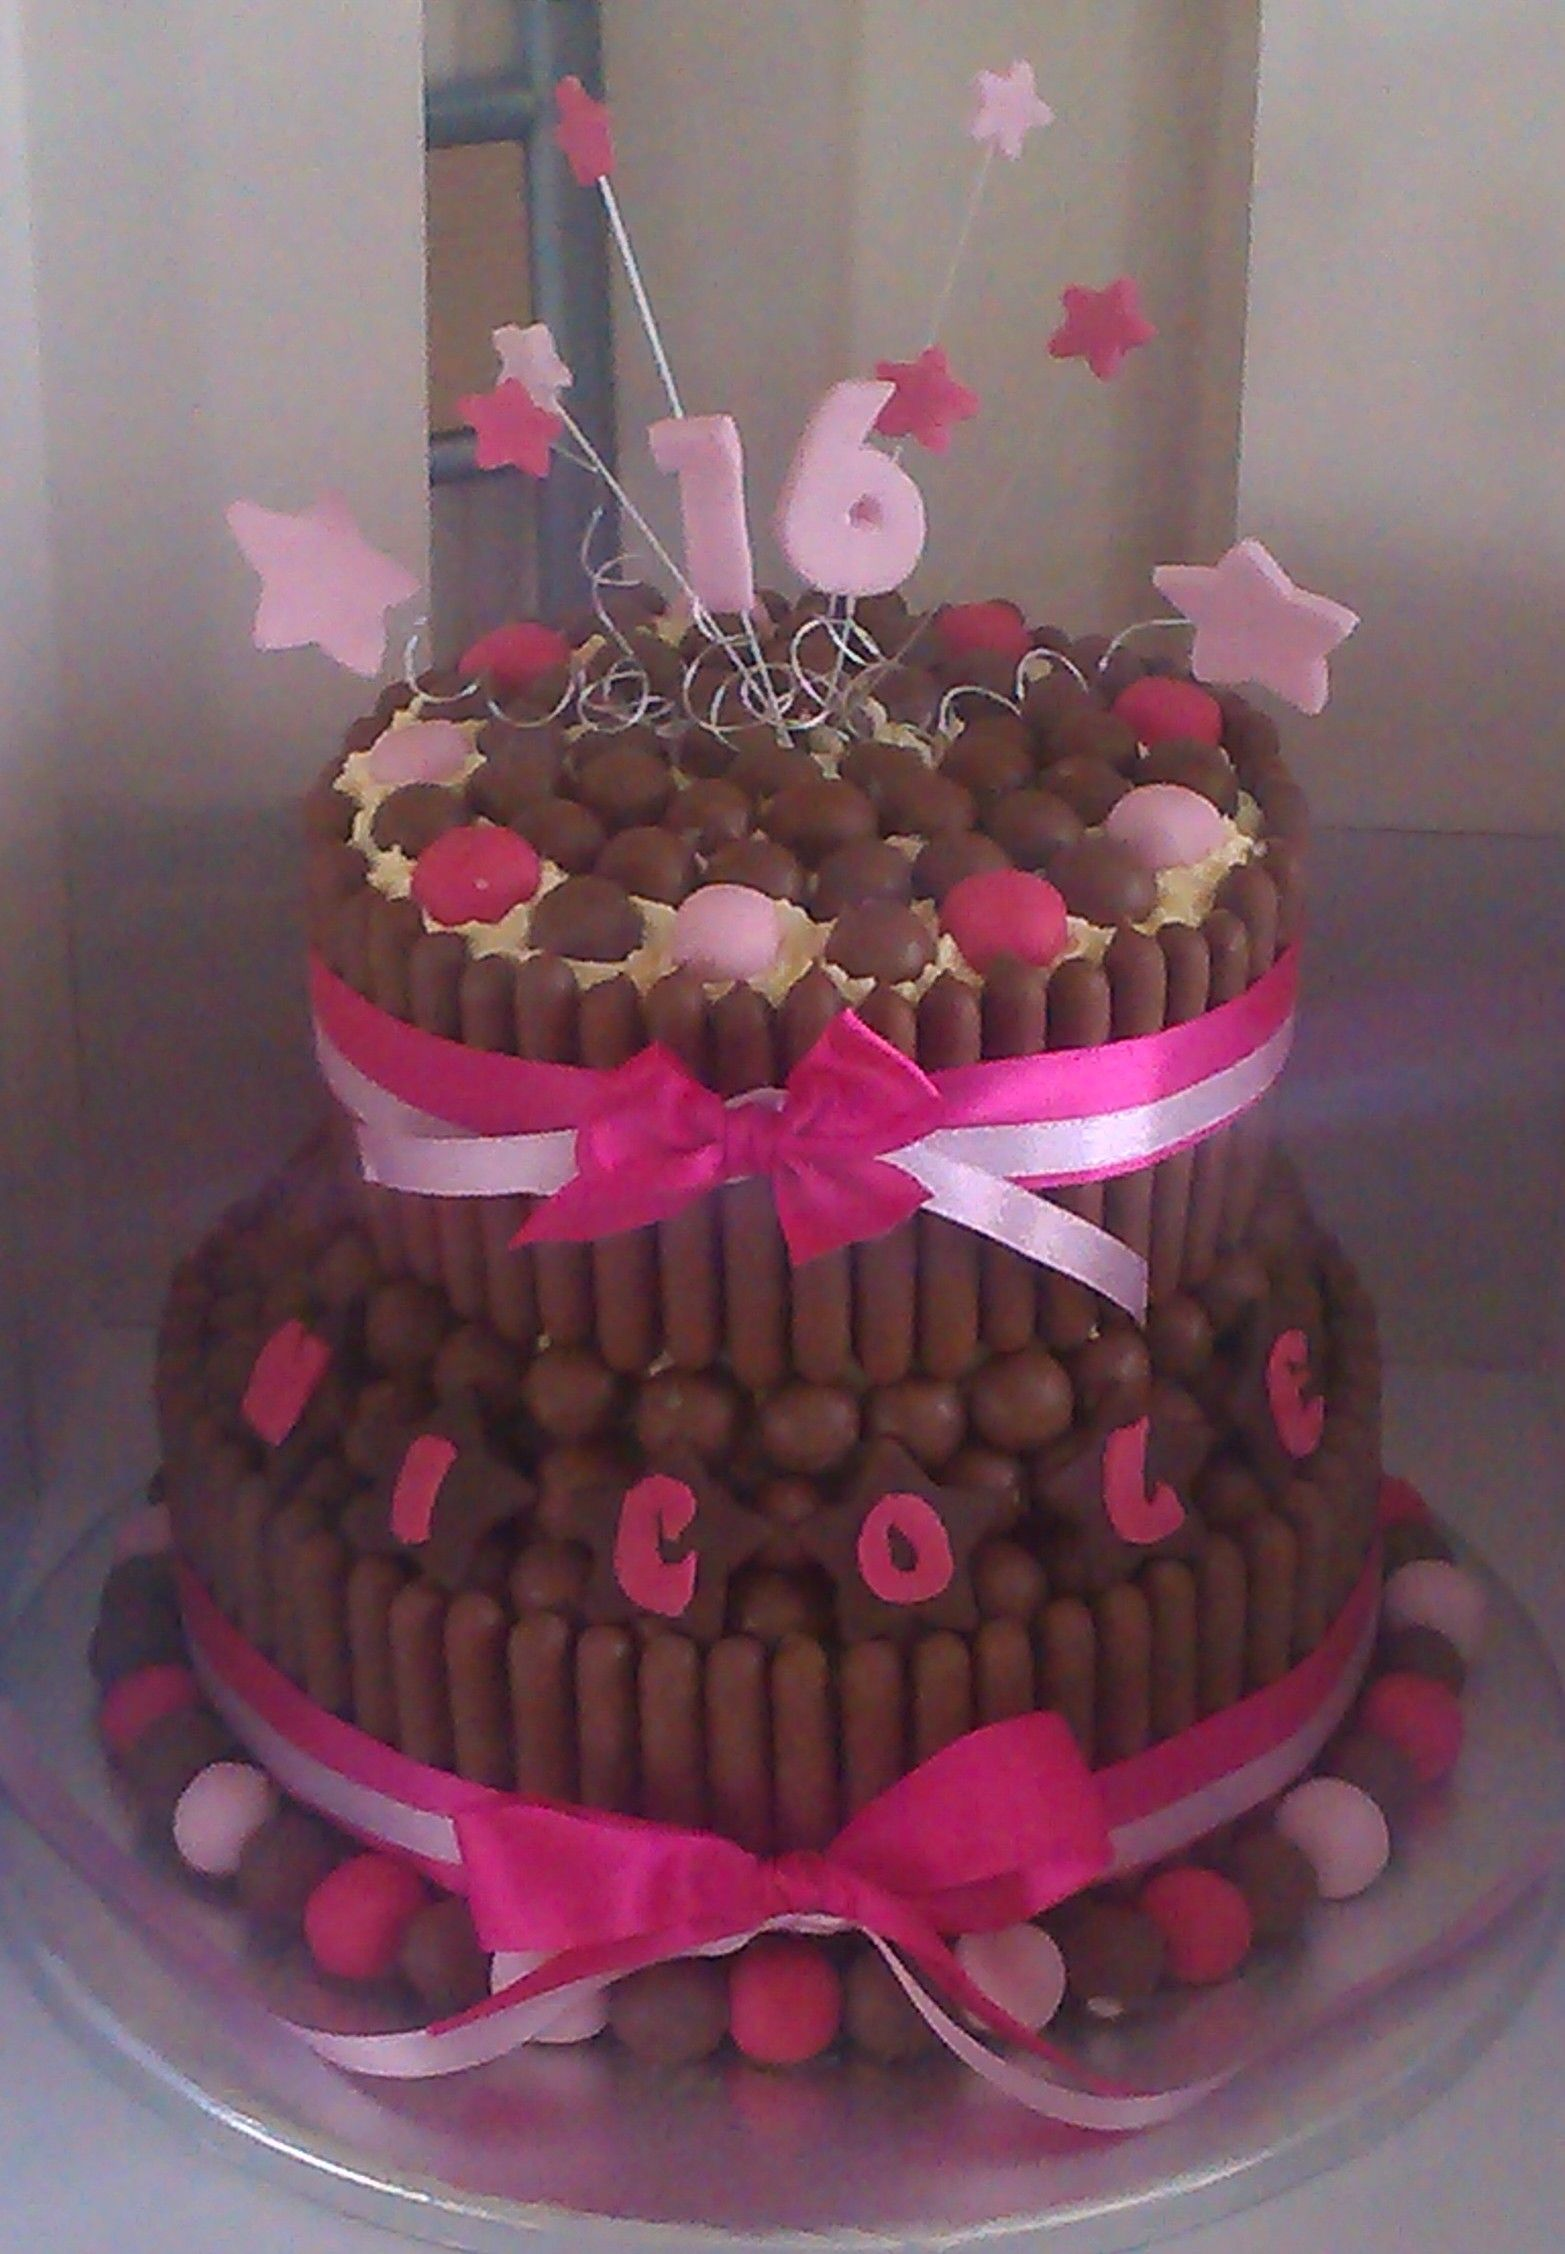 Double Tier, 16th Birthday Cake (for nicole) Choc-chip sponge filled and topped with white chocolate butter cream, with choc fingers & Maltesars. x